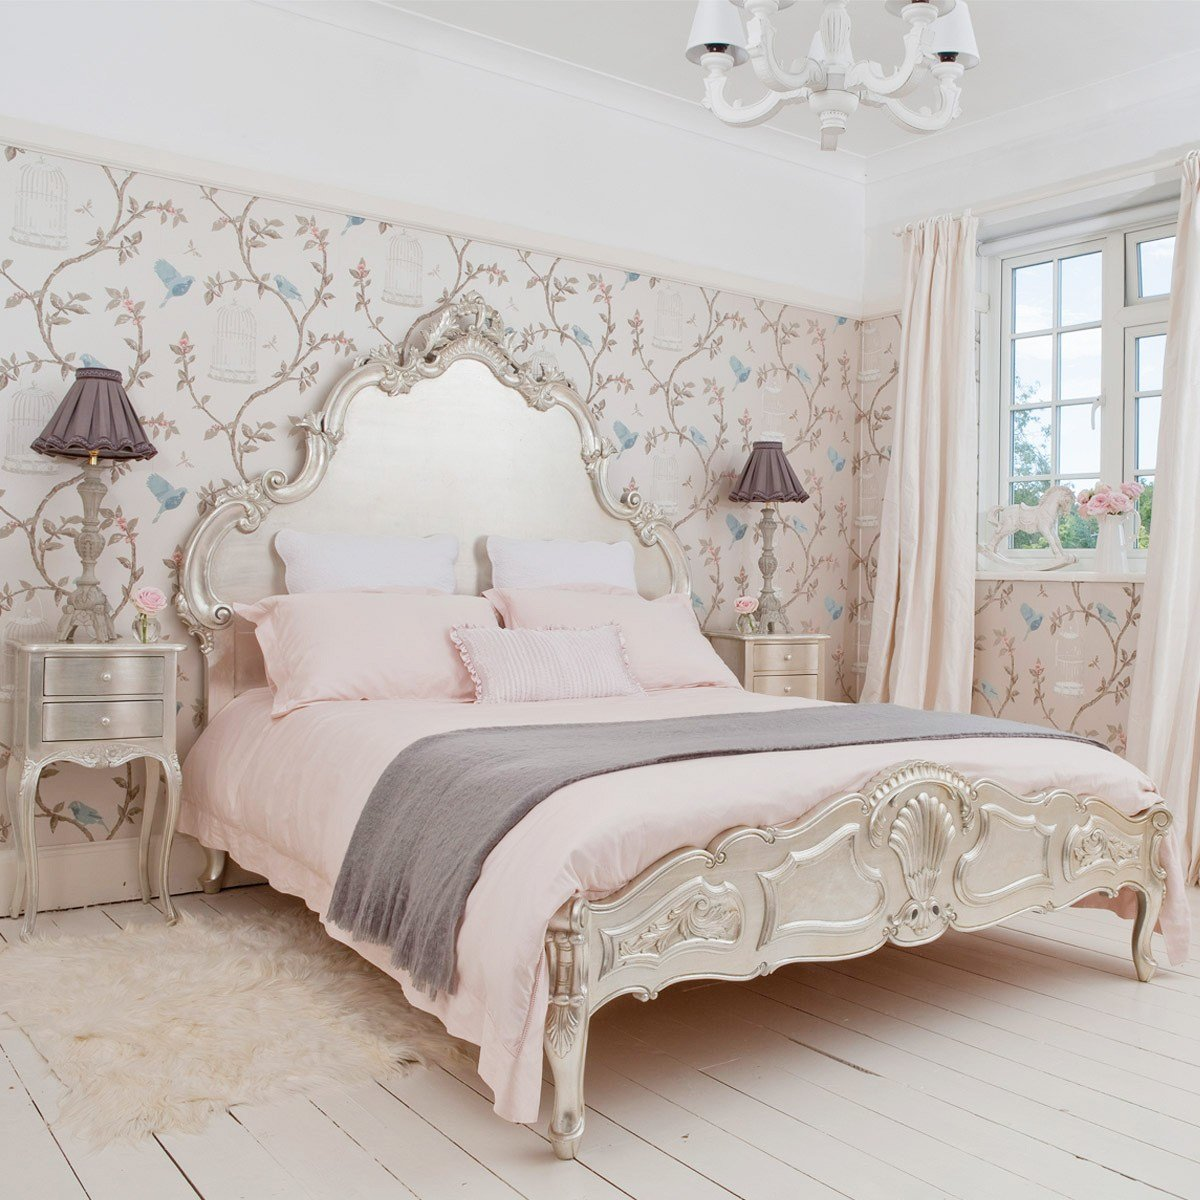 Best French Furniture Art – French Furniture Is A Trend To With Pictures